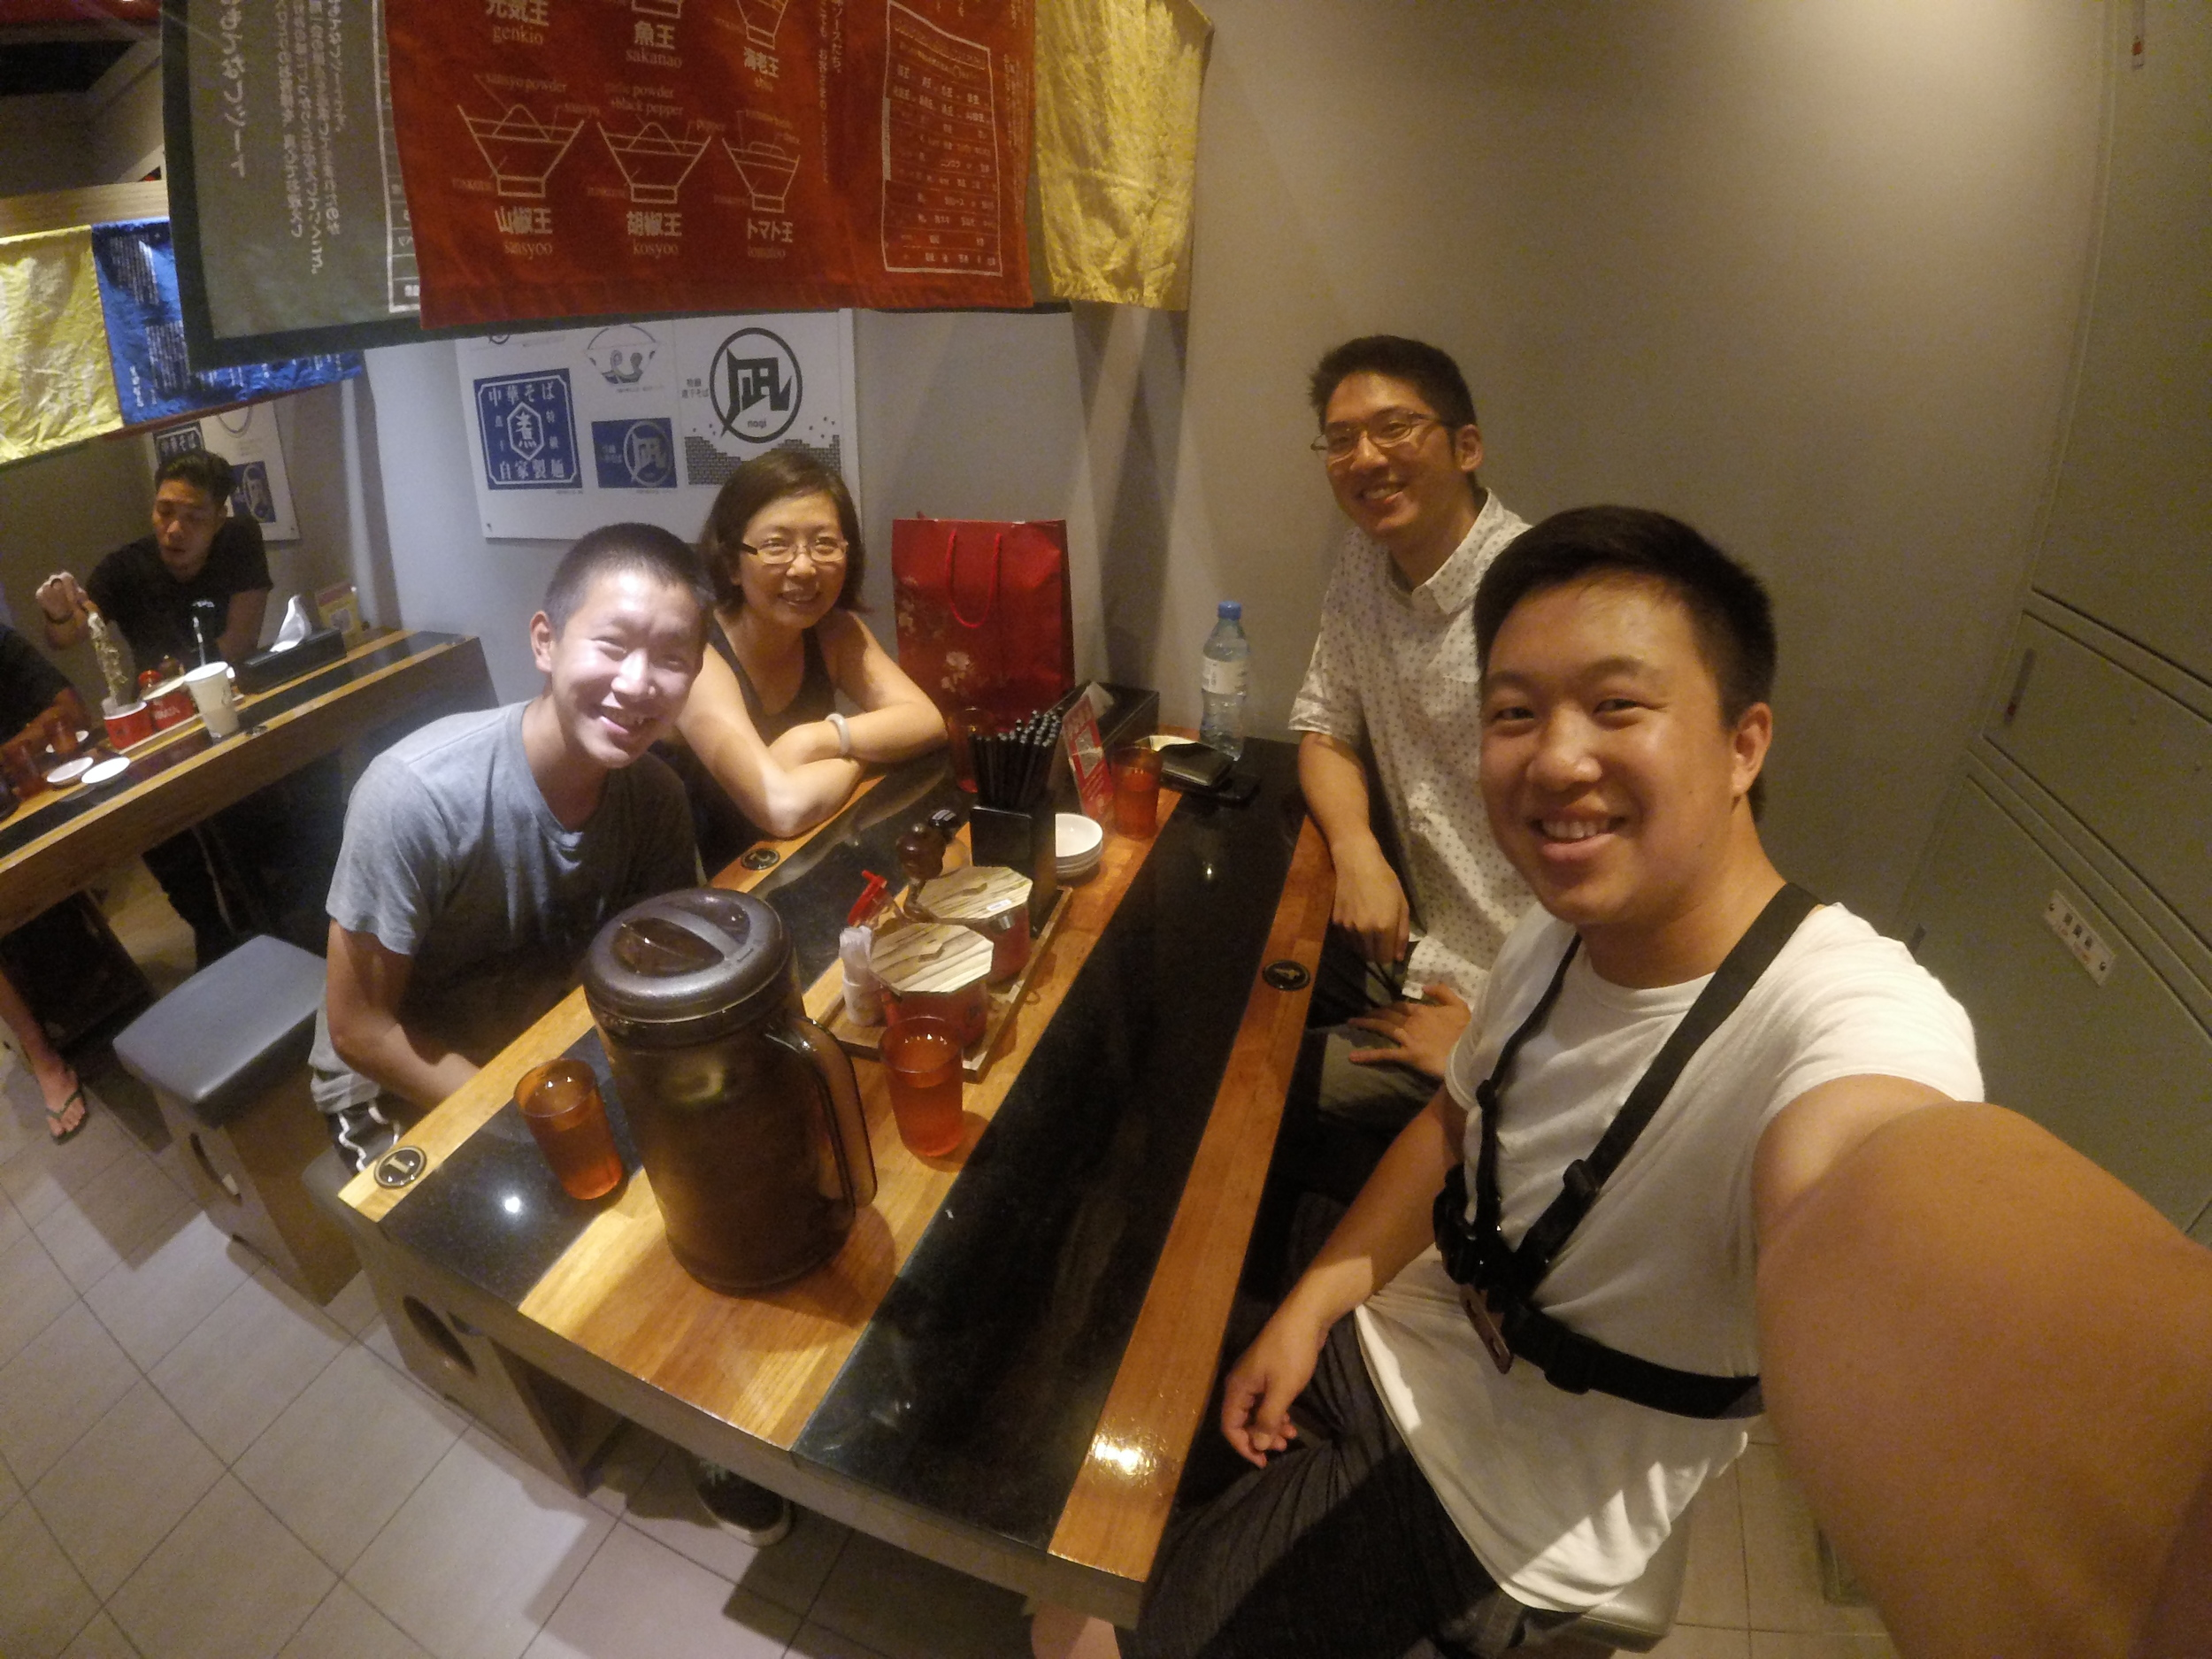 The Zhangs happened to be in Taipei at the same time so we met up and ate dinner!